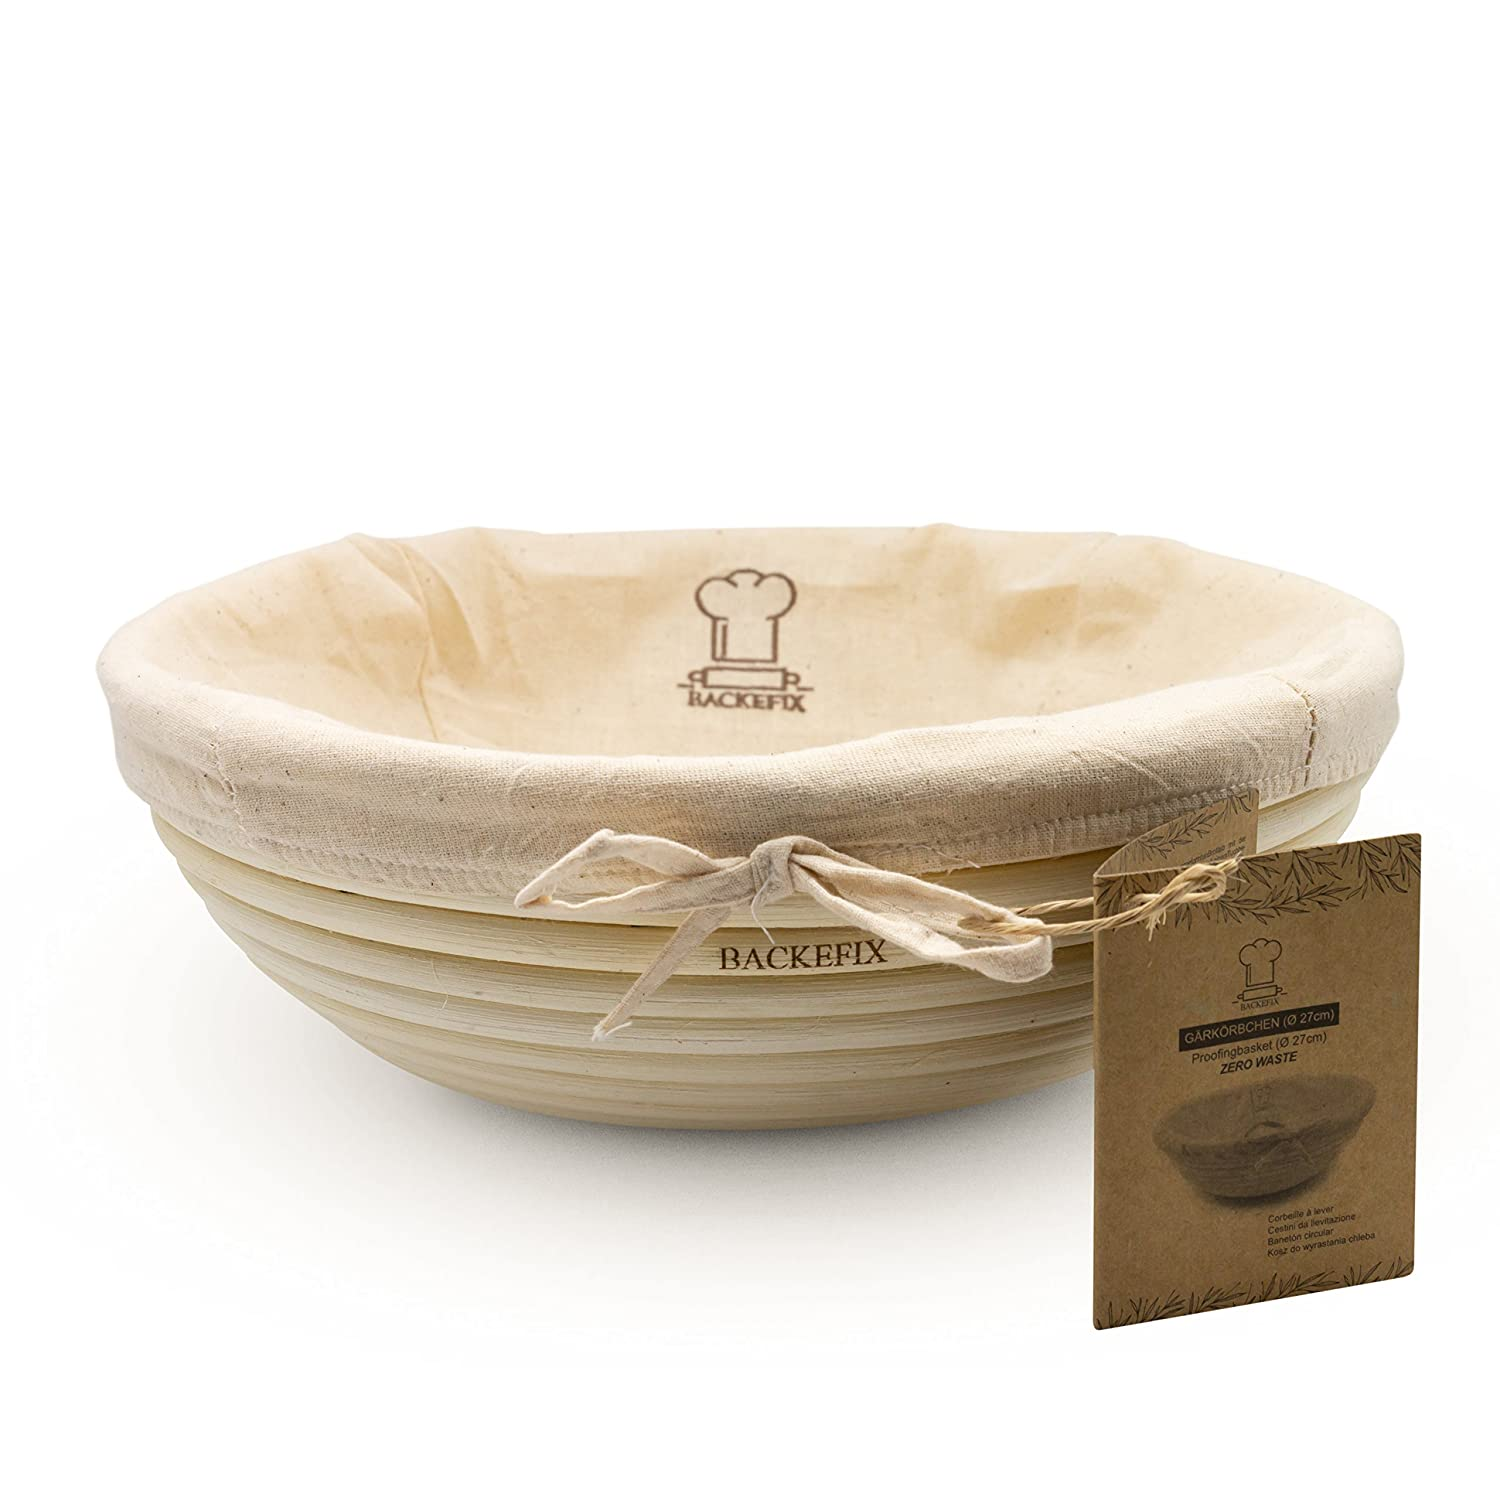 BackeFix Round Bread Proving Basket For Your Own Bread/Zero Waste Natural Wooden Bowl ø 27 cm, natural, 27 cm